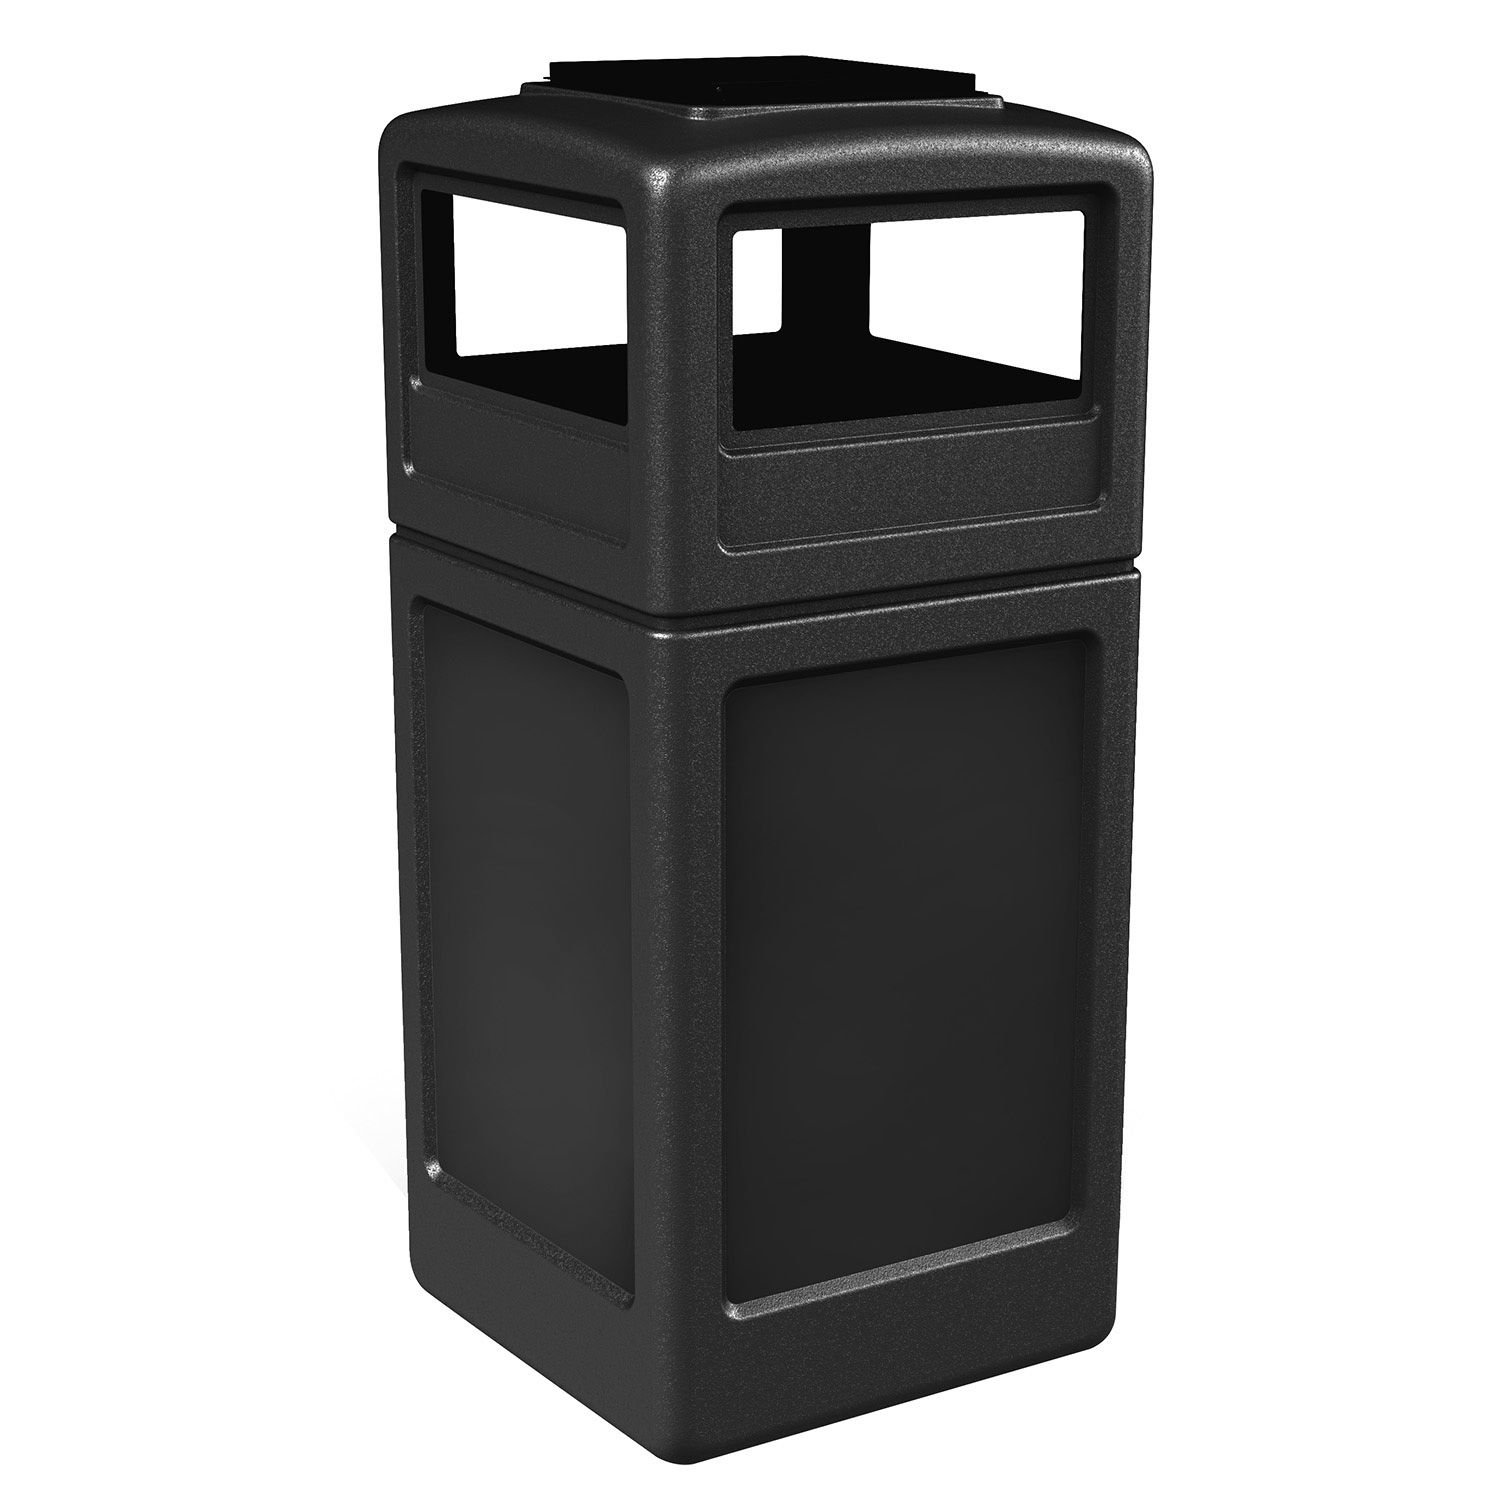 RecyclePro Waste Container w/Ashtray Lid, Polyethylene, Garbage Can, Trash, Litter, 42-gal (Black) by RecyclePro